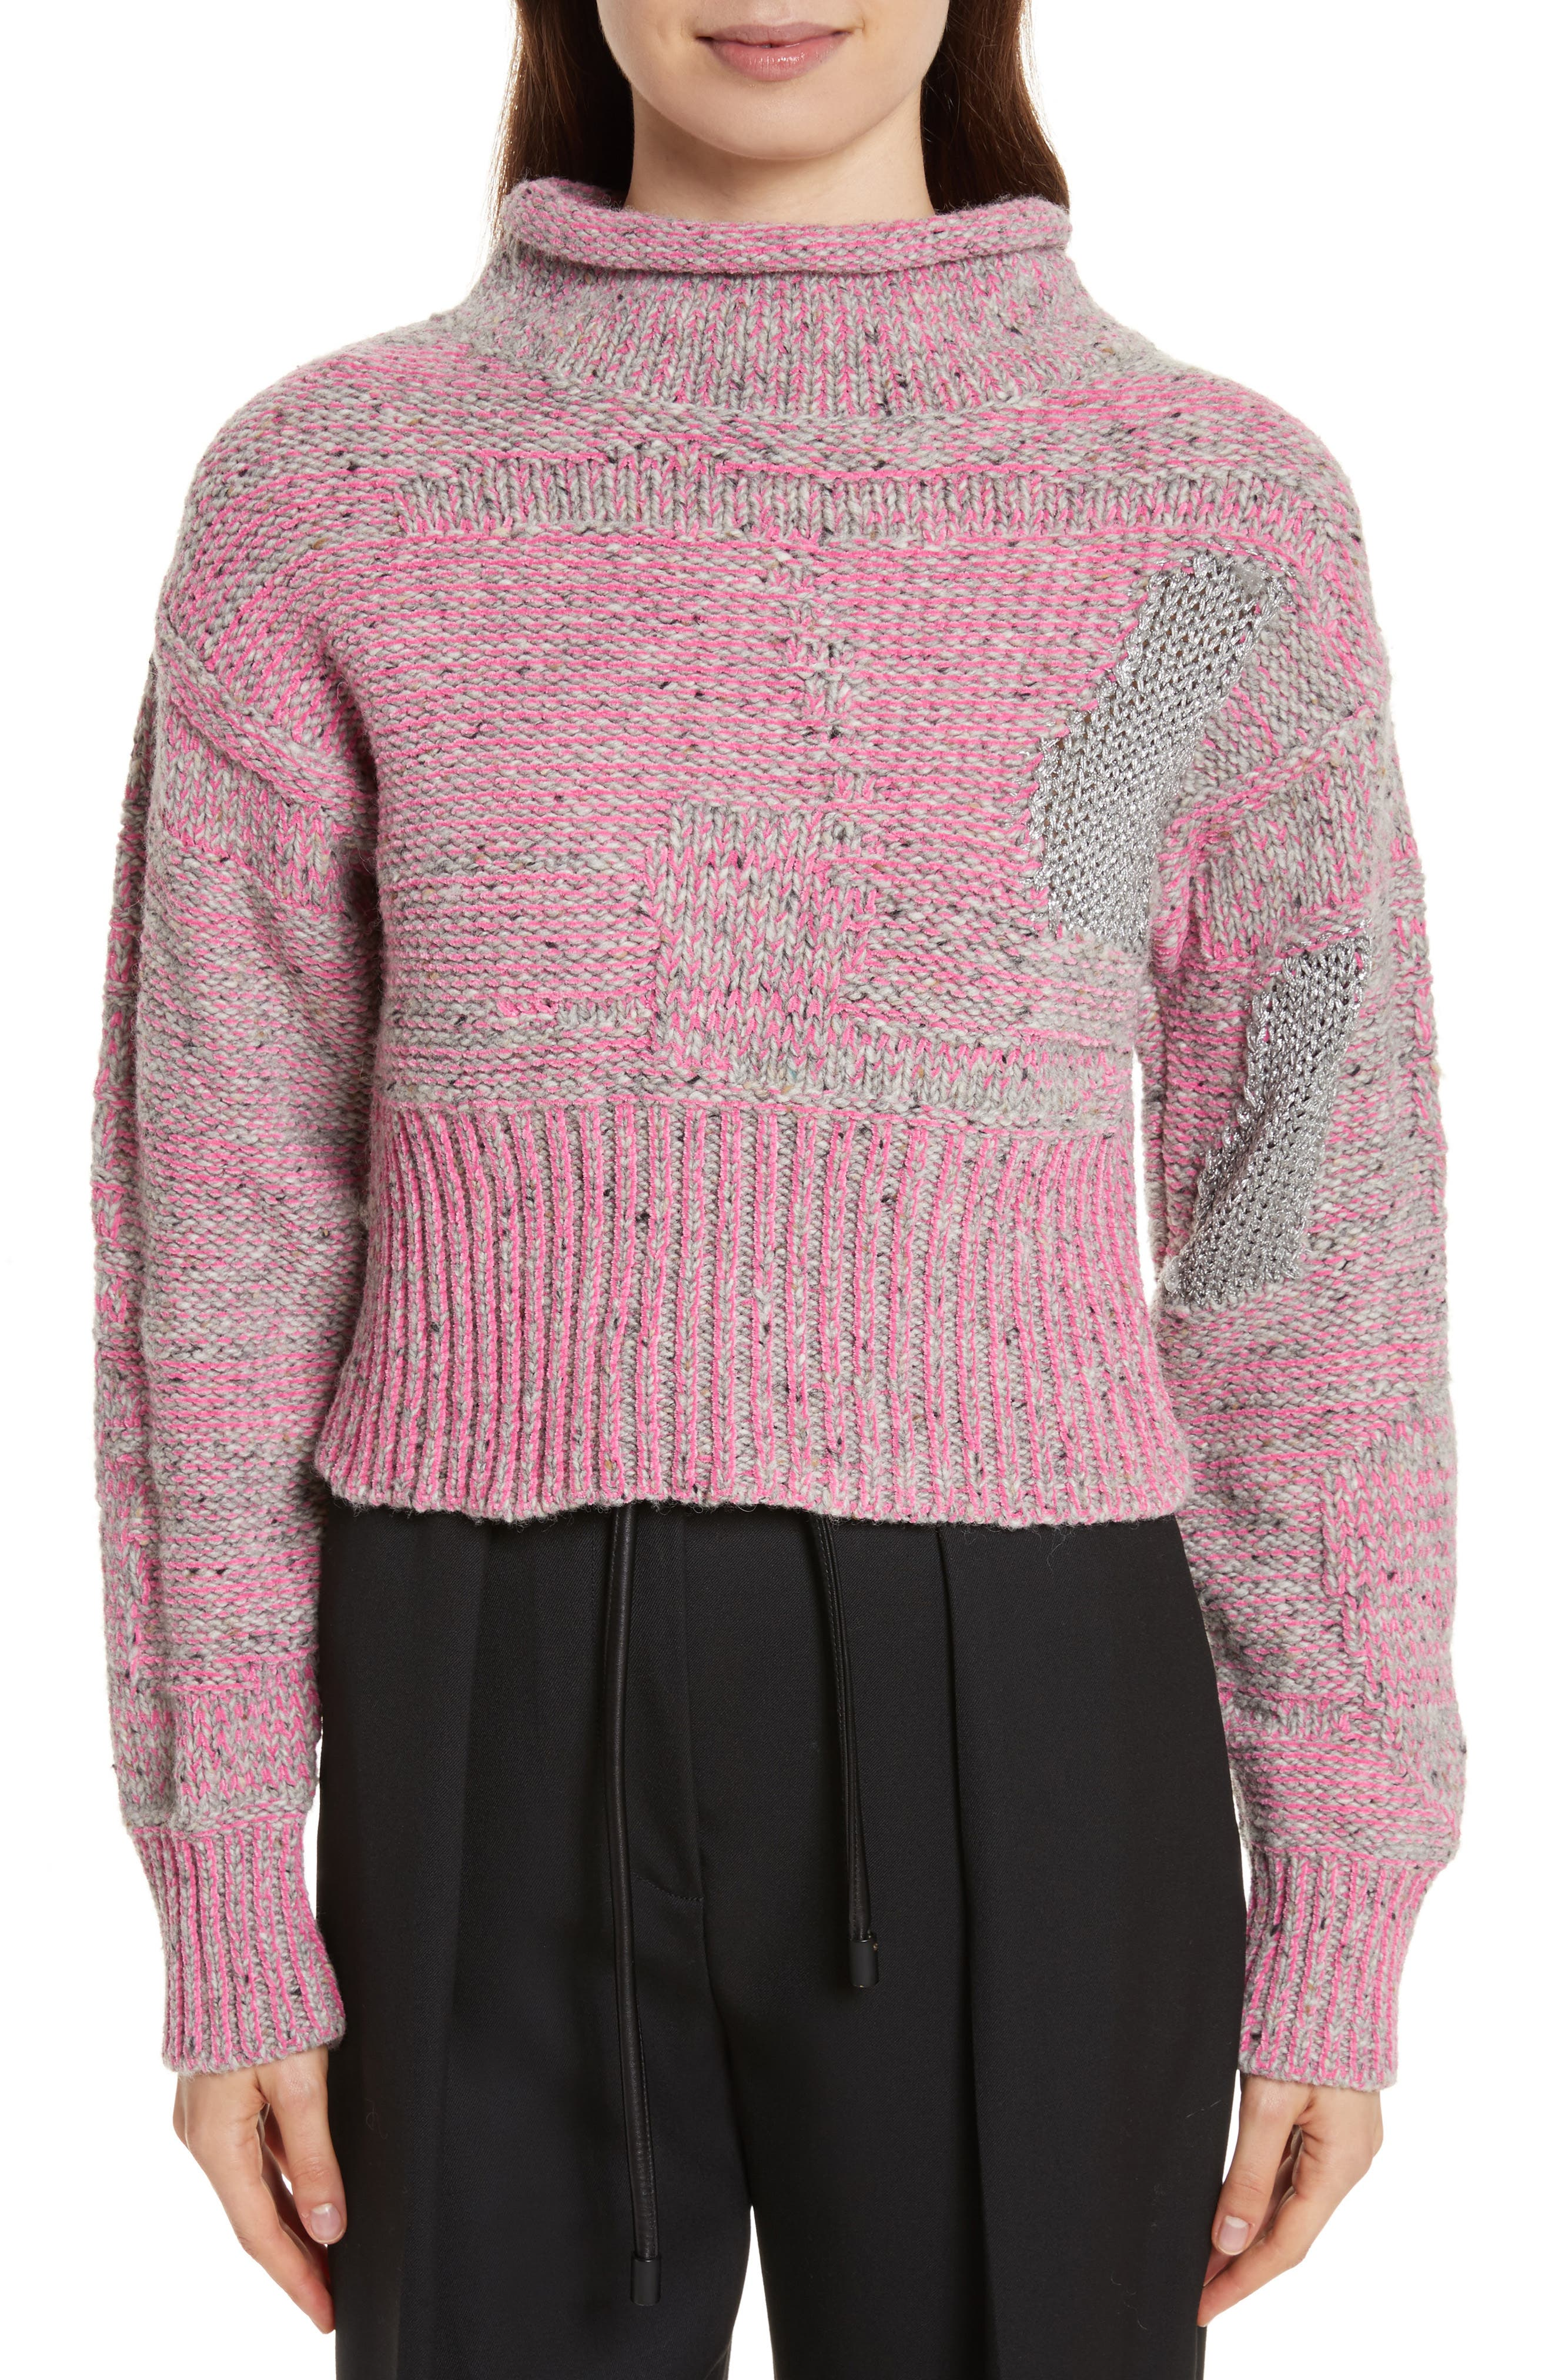 Main Image - 3.1 Phillip Lim Wool Blend Funnel Neck Sweater